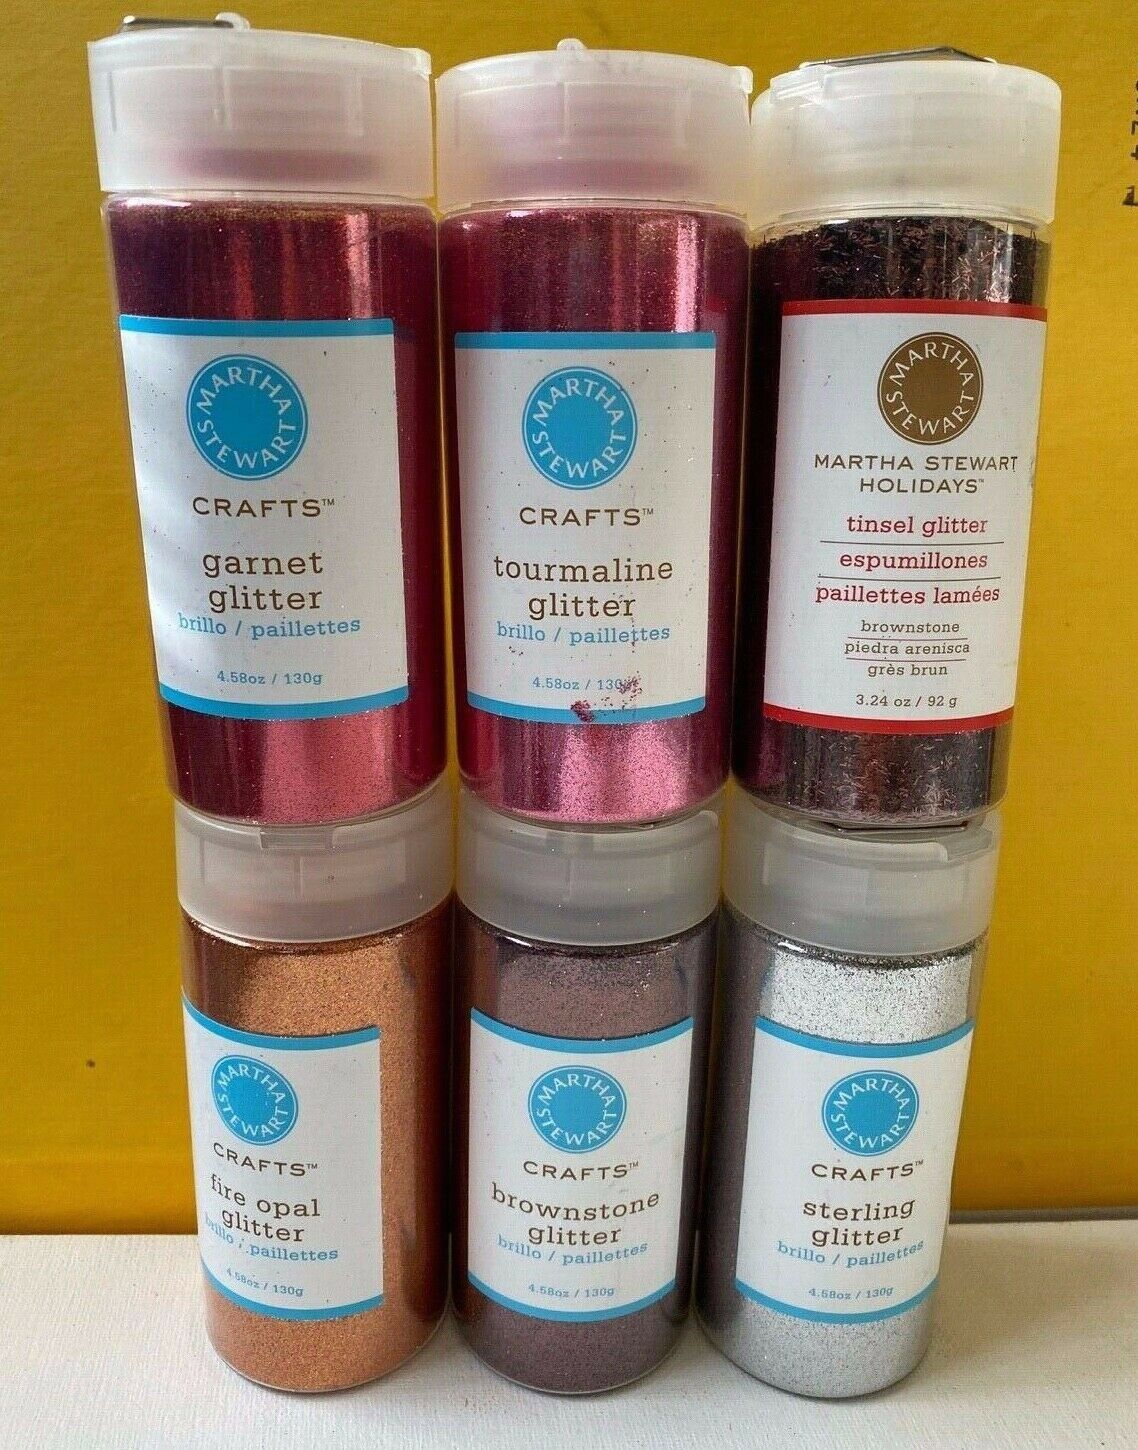 Martha Stewart Crafts 4.58 oz Glitter YOU SELECT large jar garnet sterling